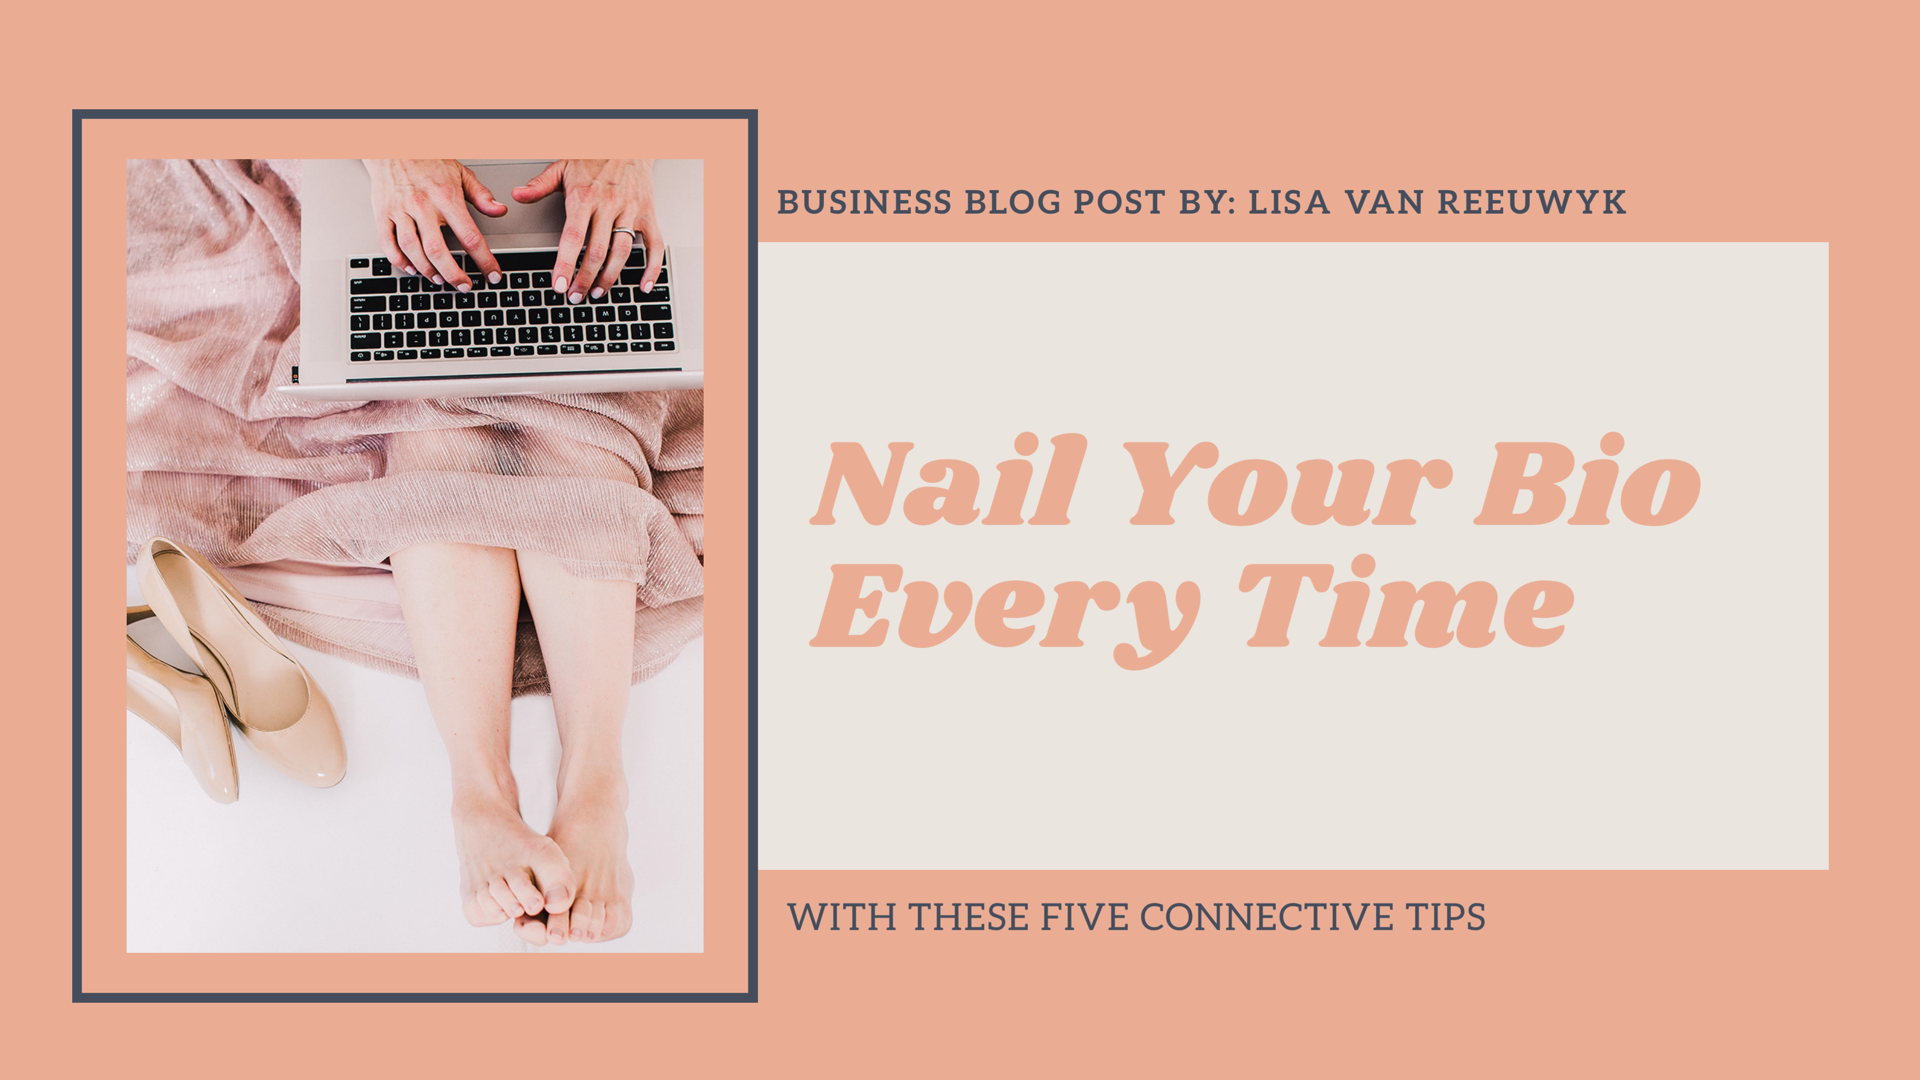 Nail Your Bio Every Time - Lisa van Reeuwyk